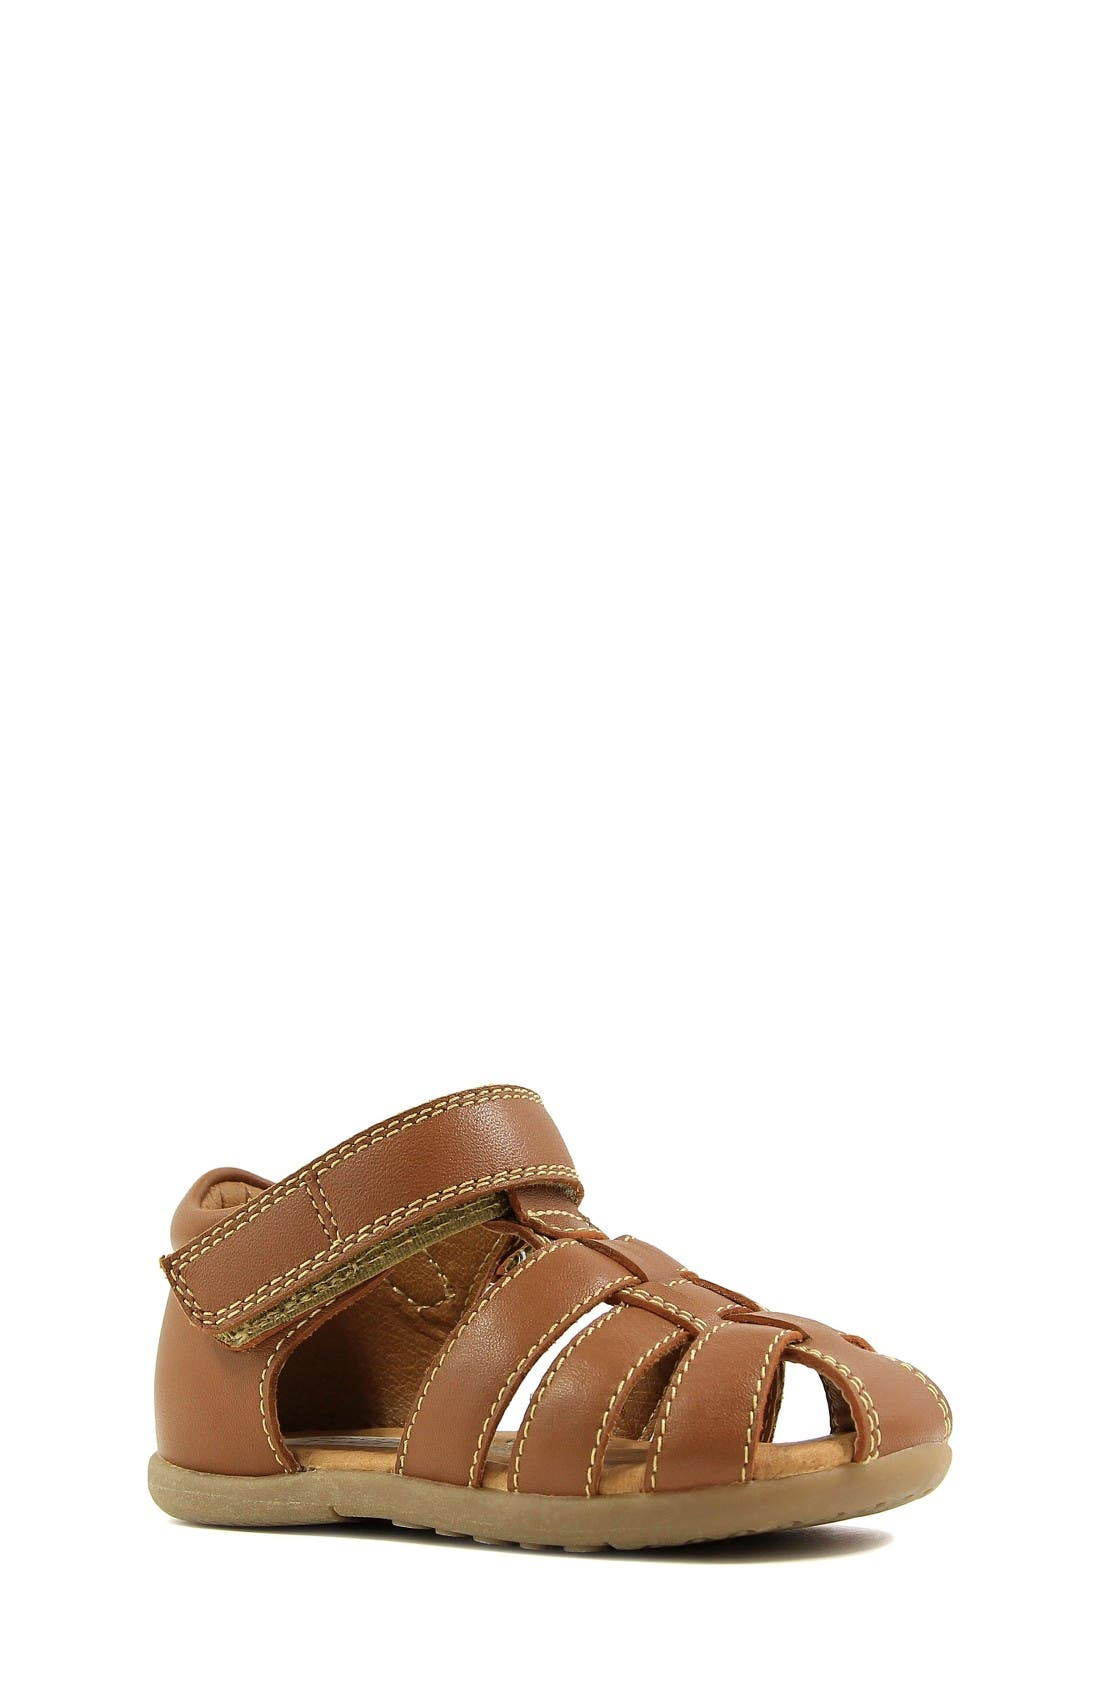 Ryker Sandal,                             Main thumbnail 1, color,                             Saddle Tan Leather